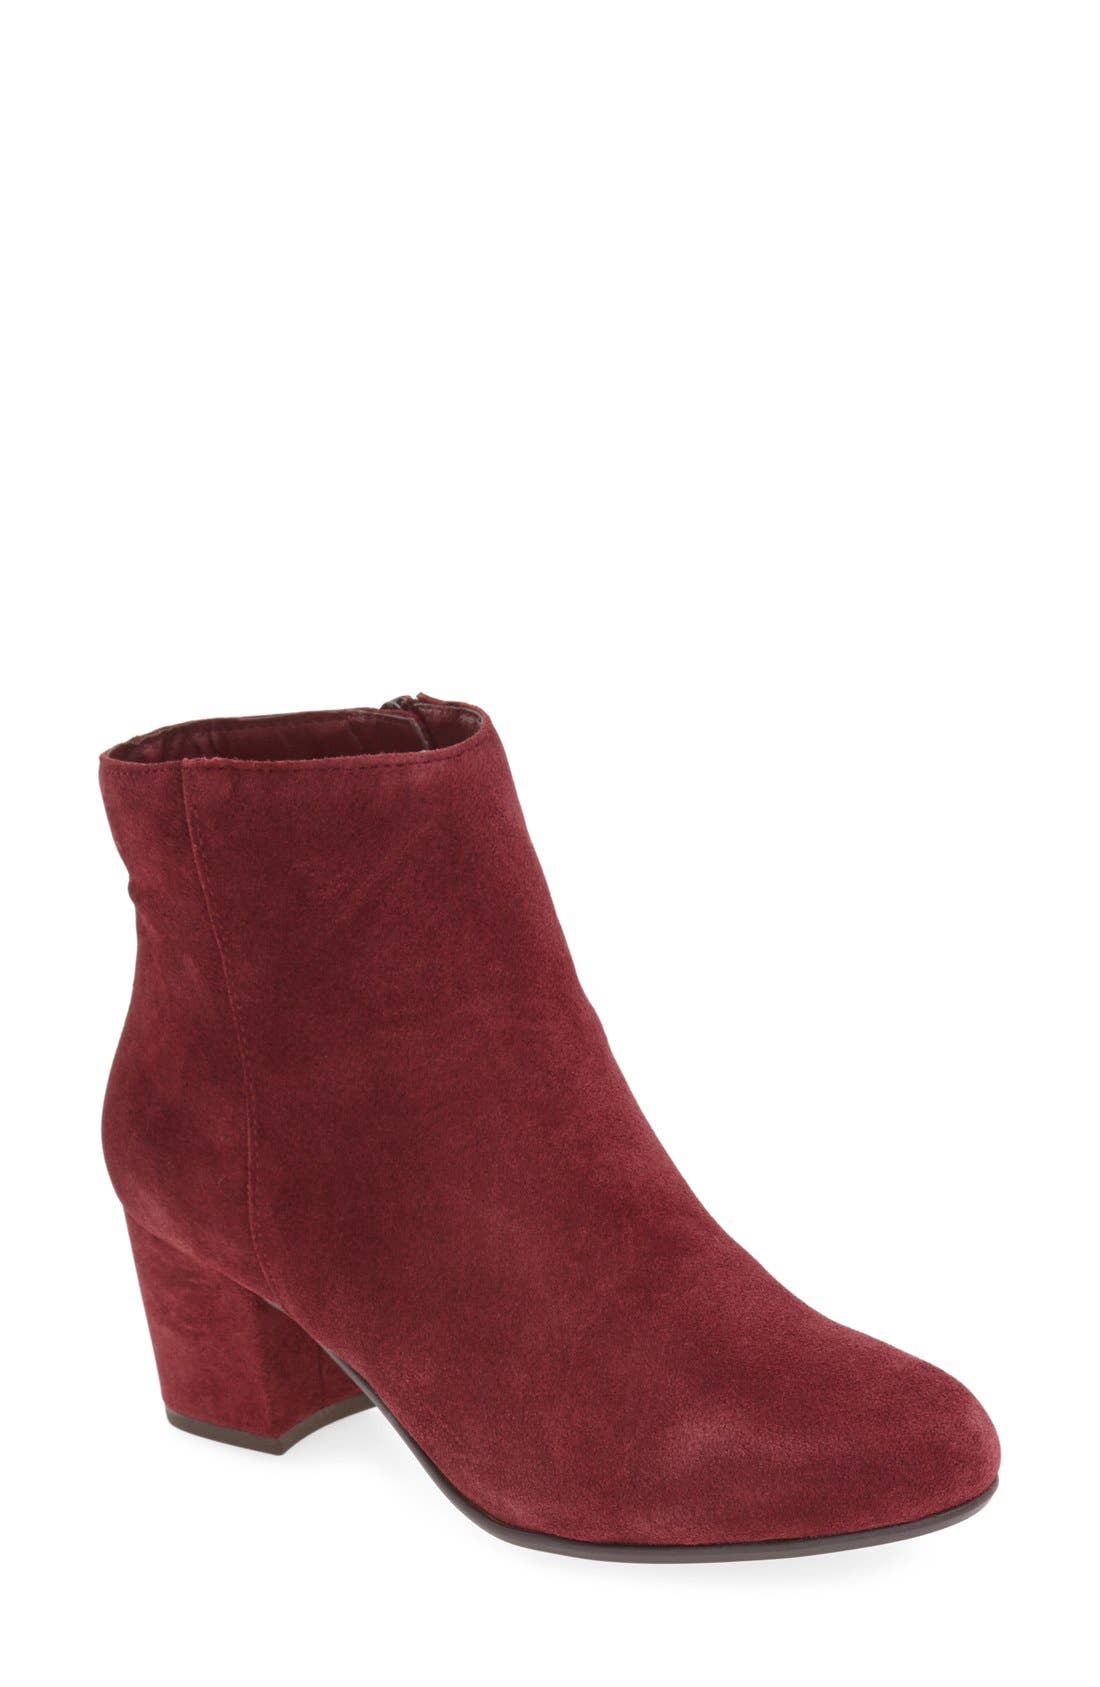 Holster Bootie,                             Main thumbnail 1, color,                             Burgundy Suede